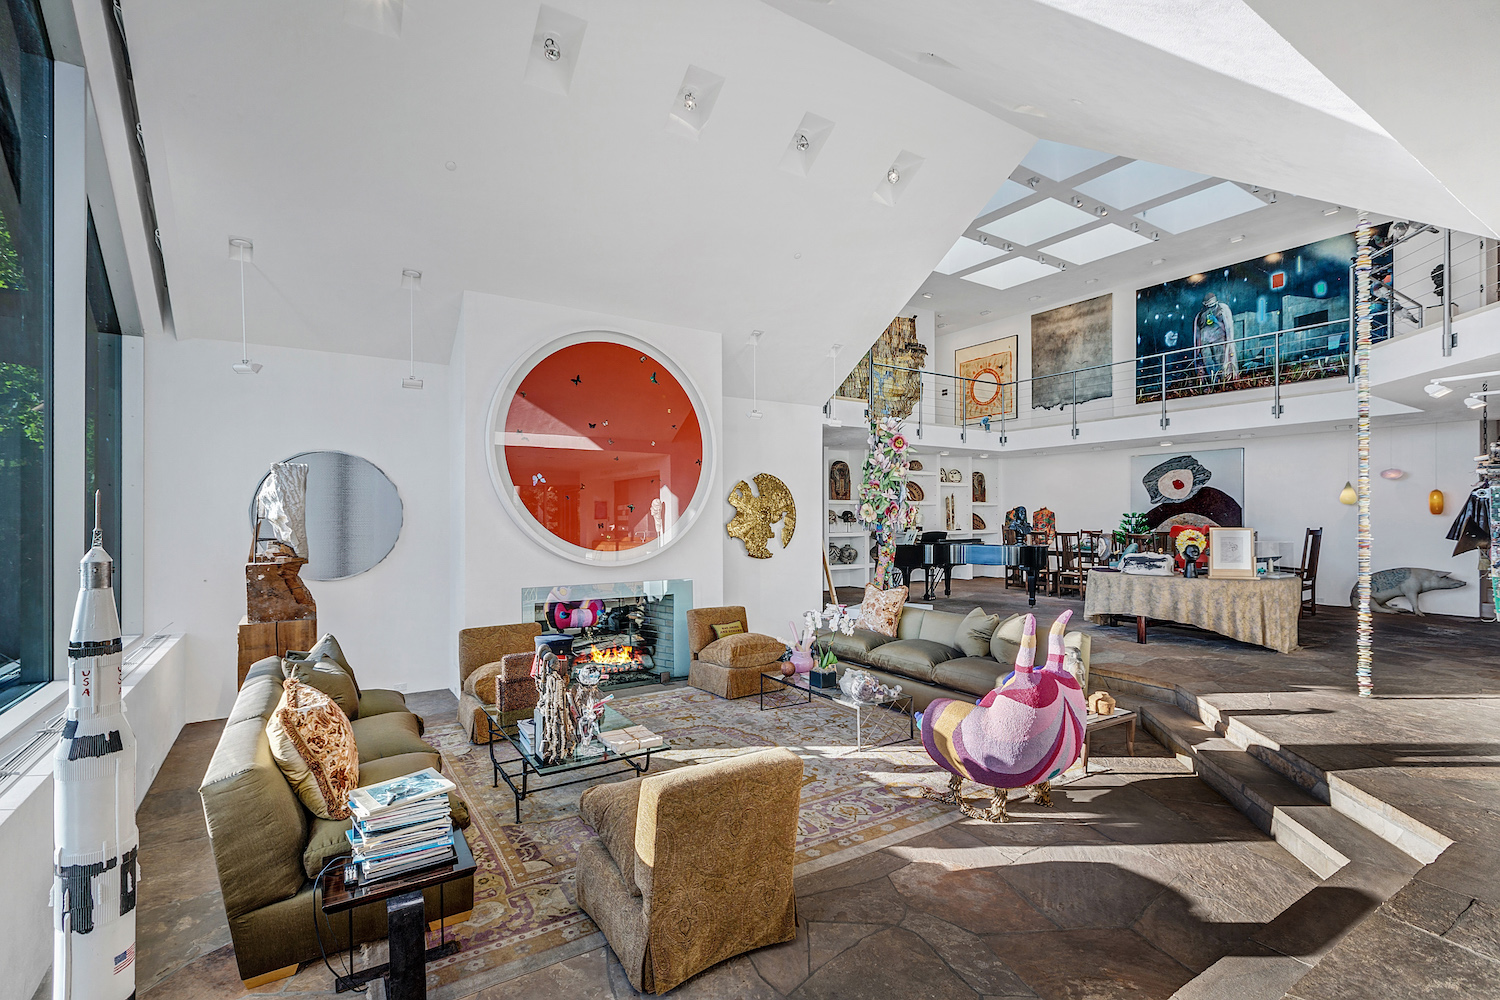 Private Gallery For Sale: This striking home doubles as a private art gallery